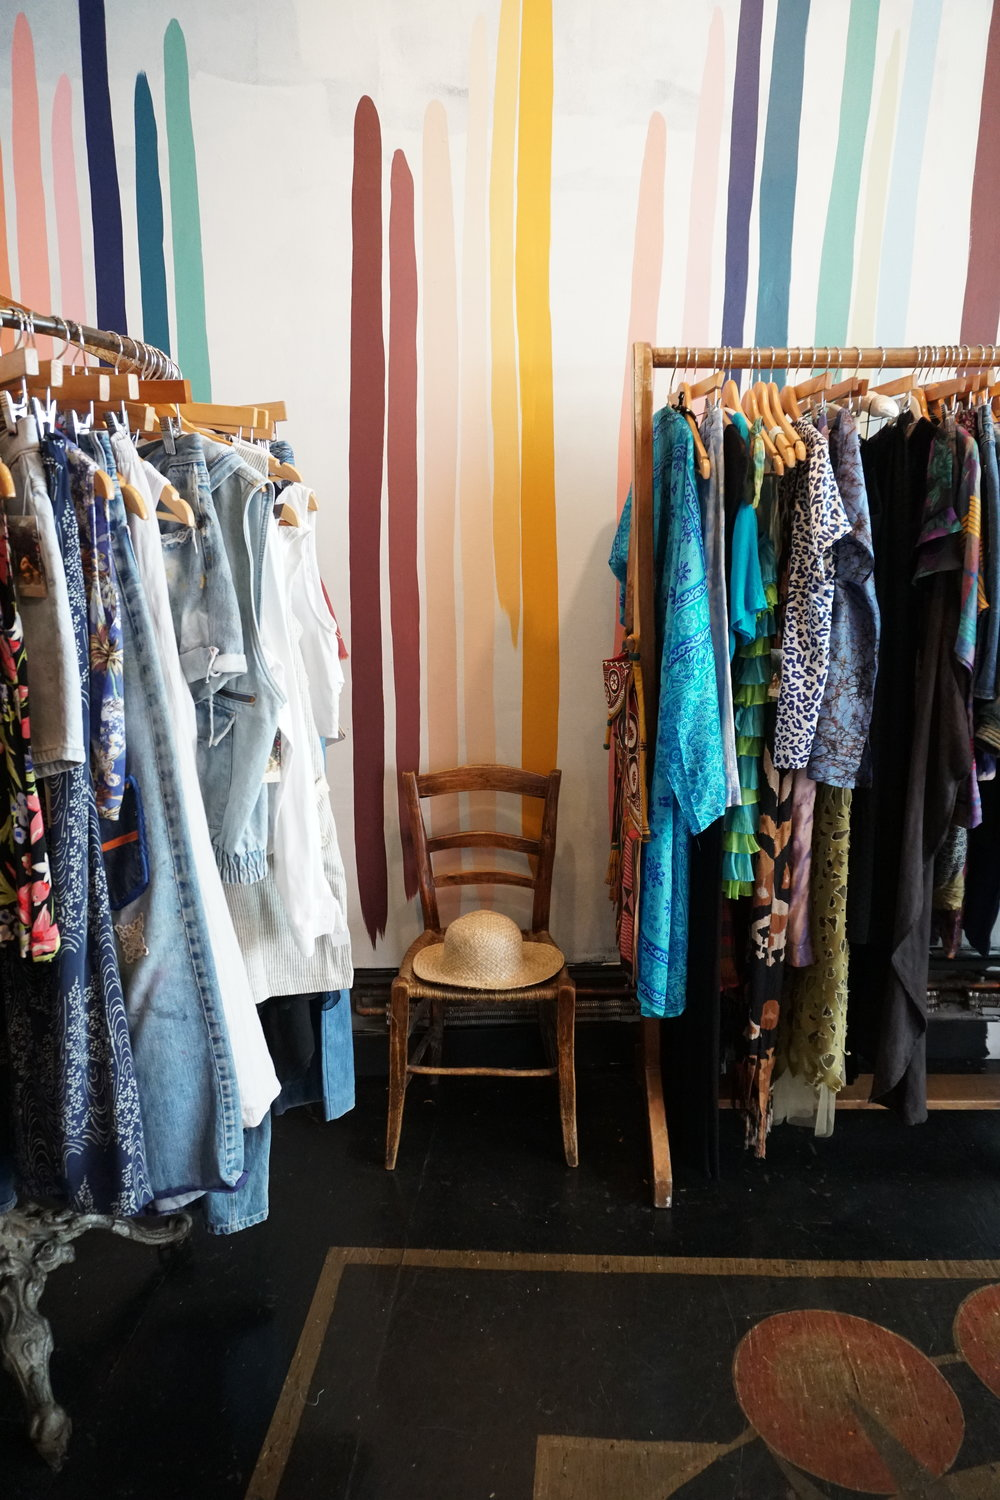 Narnia Best Vintage Clothing Stores in Williamsburg, Brooklyn, NYC The Travel Women